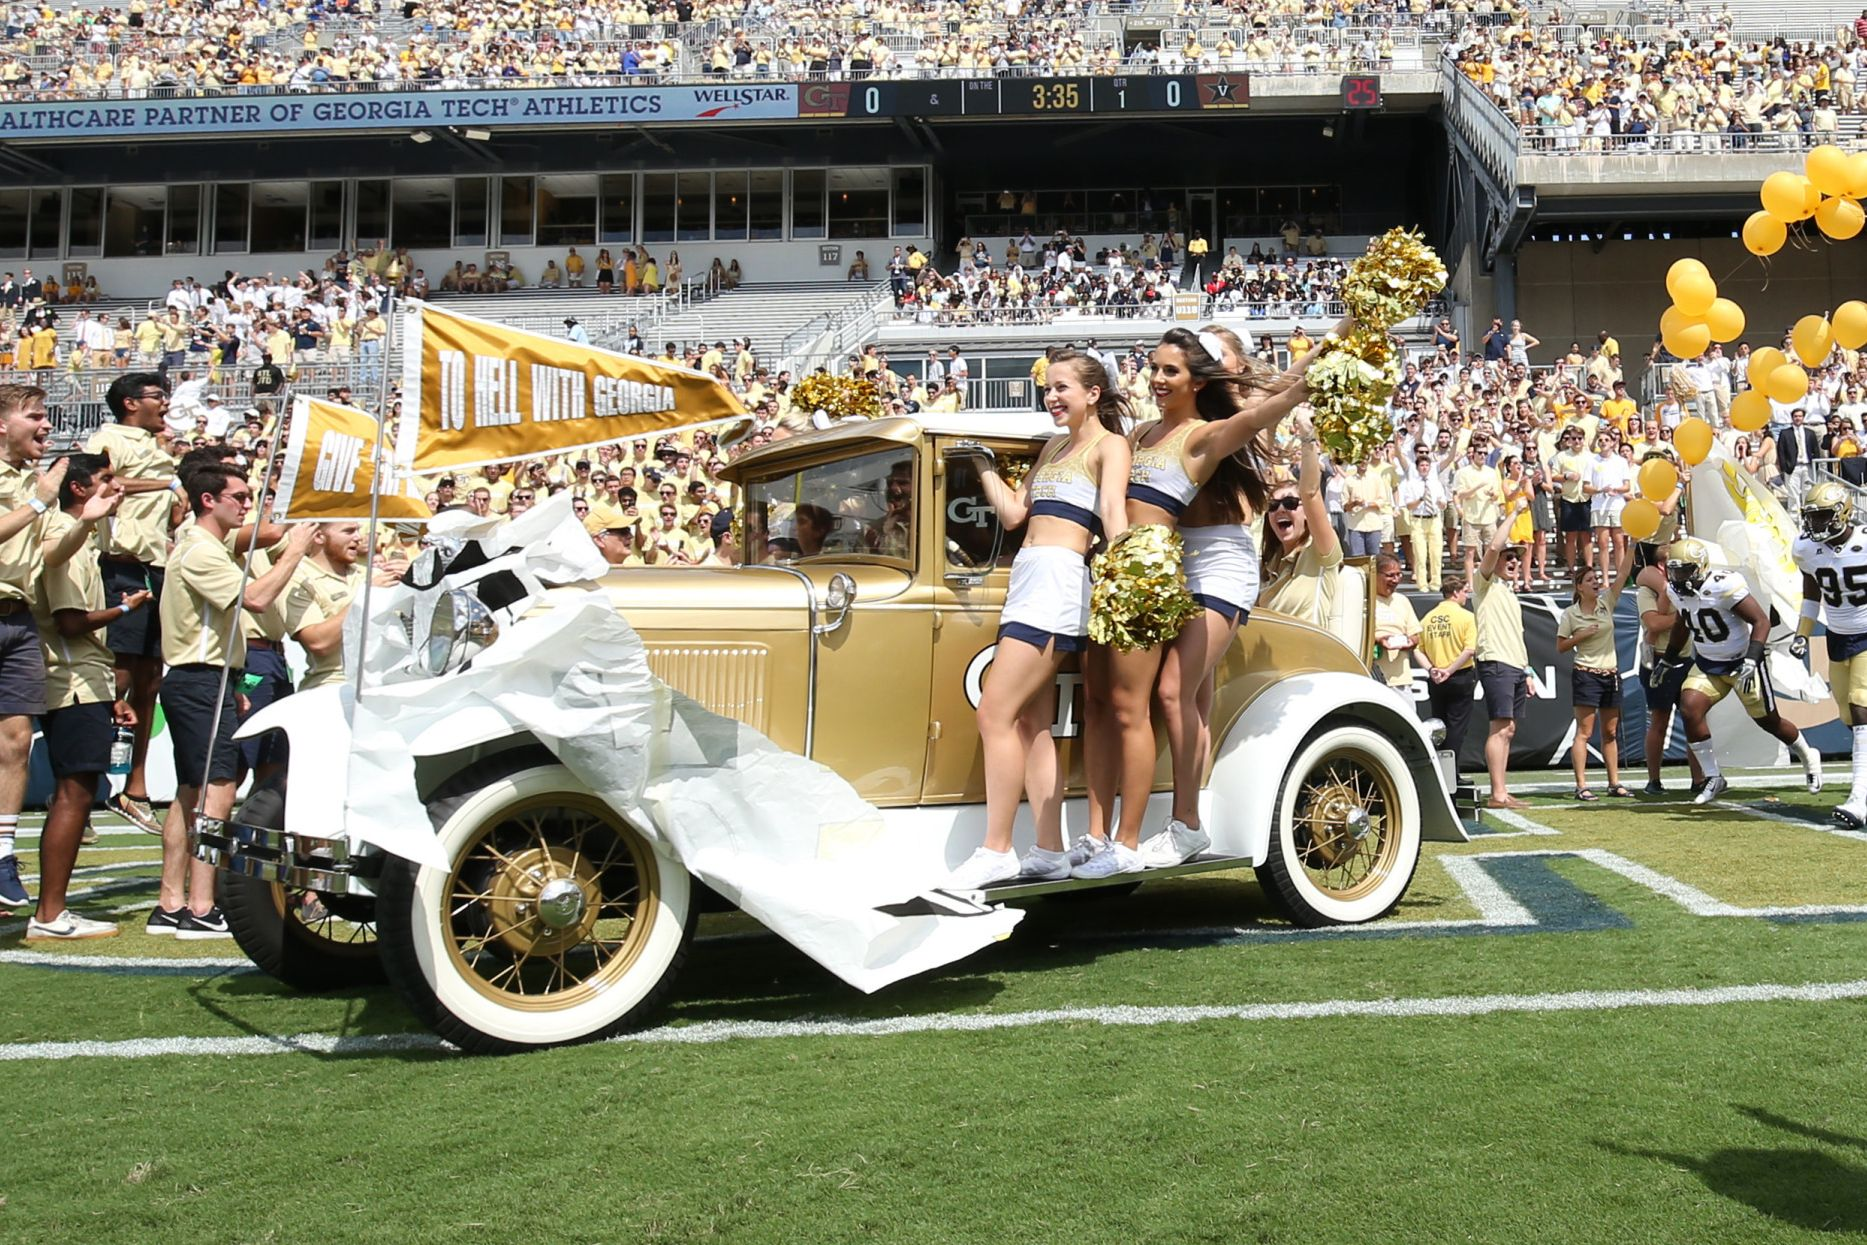 The Georgia Tech Yellow Jackets Ramblin' Wreck drives onto the field before the Jackets' game against the Vanderbilt Commodores at Bobby Dodd Stadium. Jason Getz-USA TODAY Sports